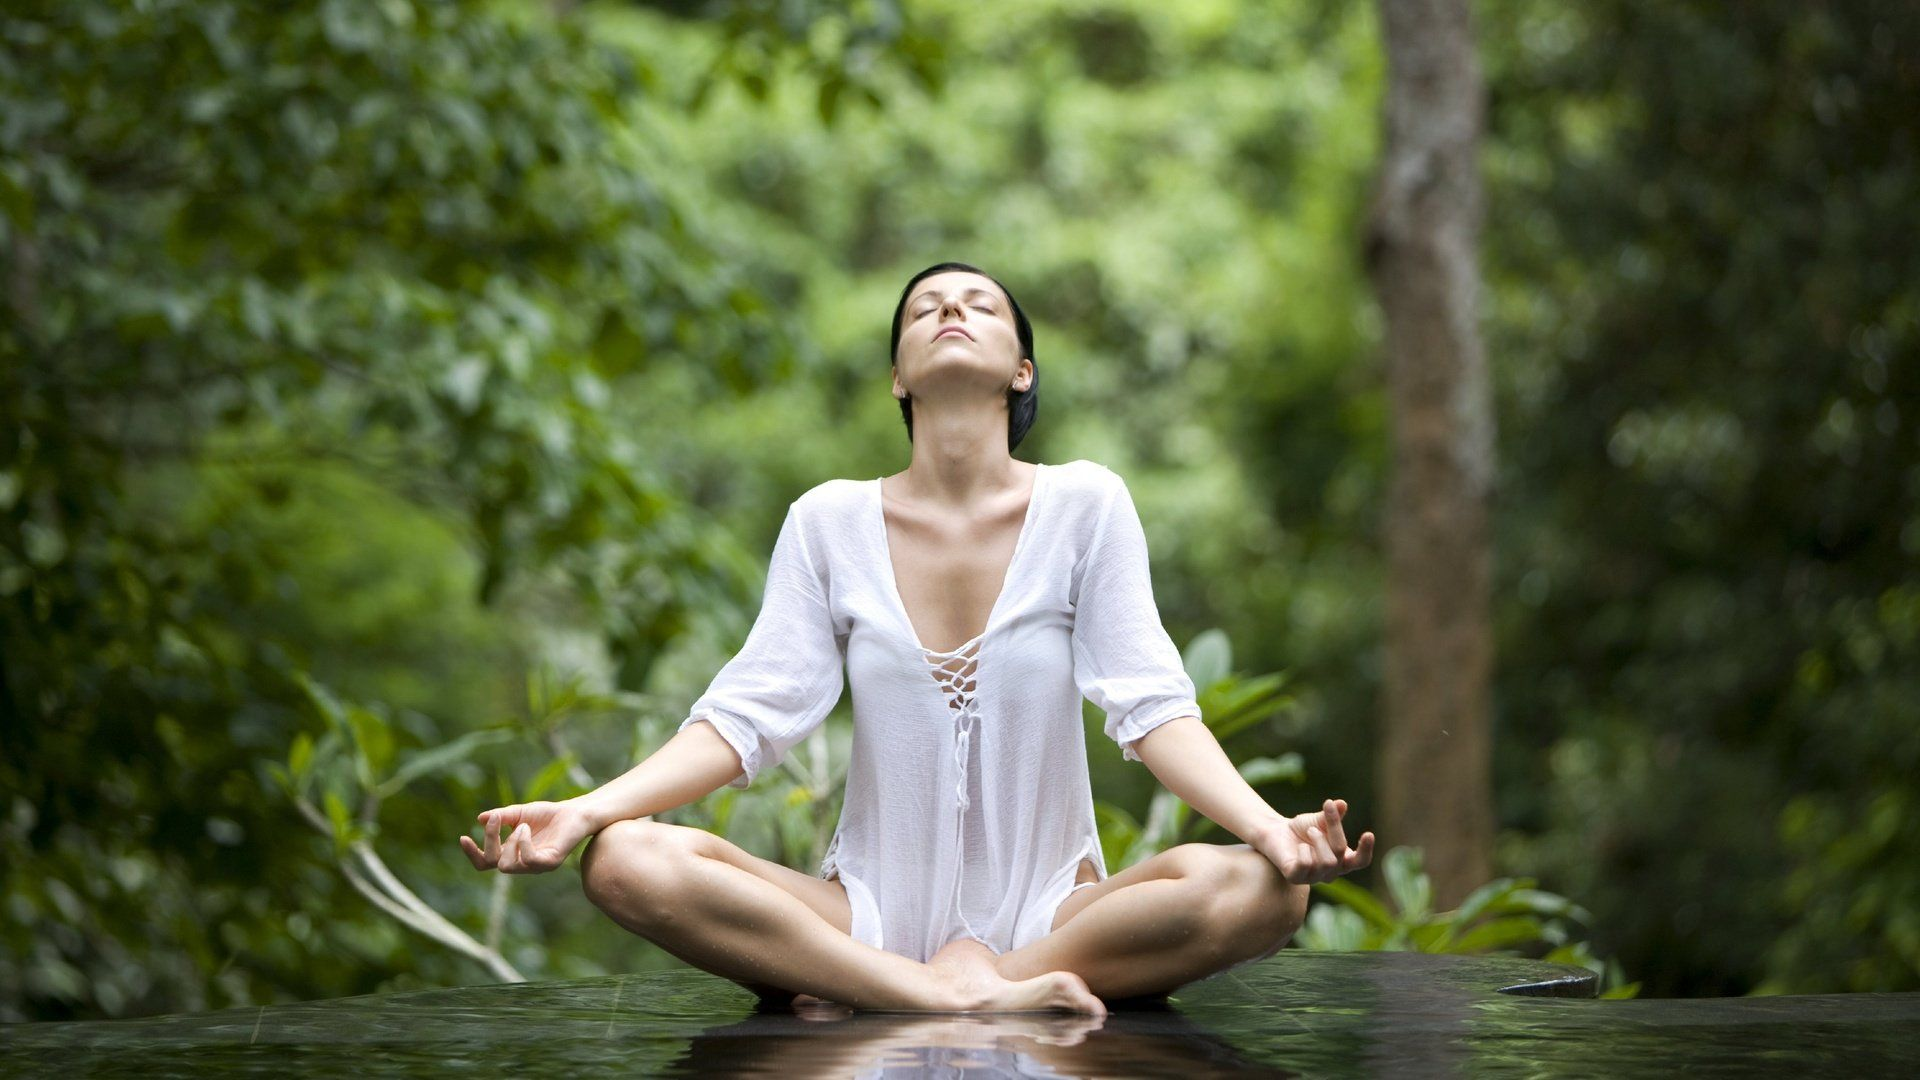 Meditation download free wallpapers for pc in hd